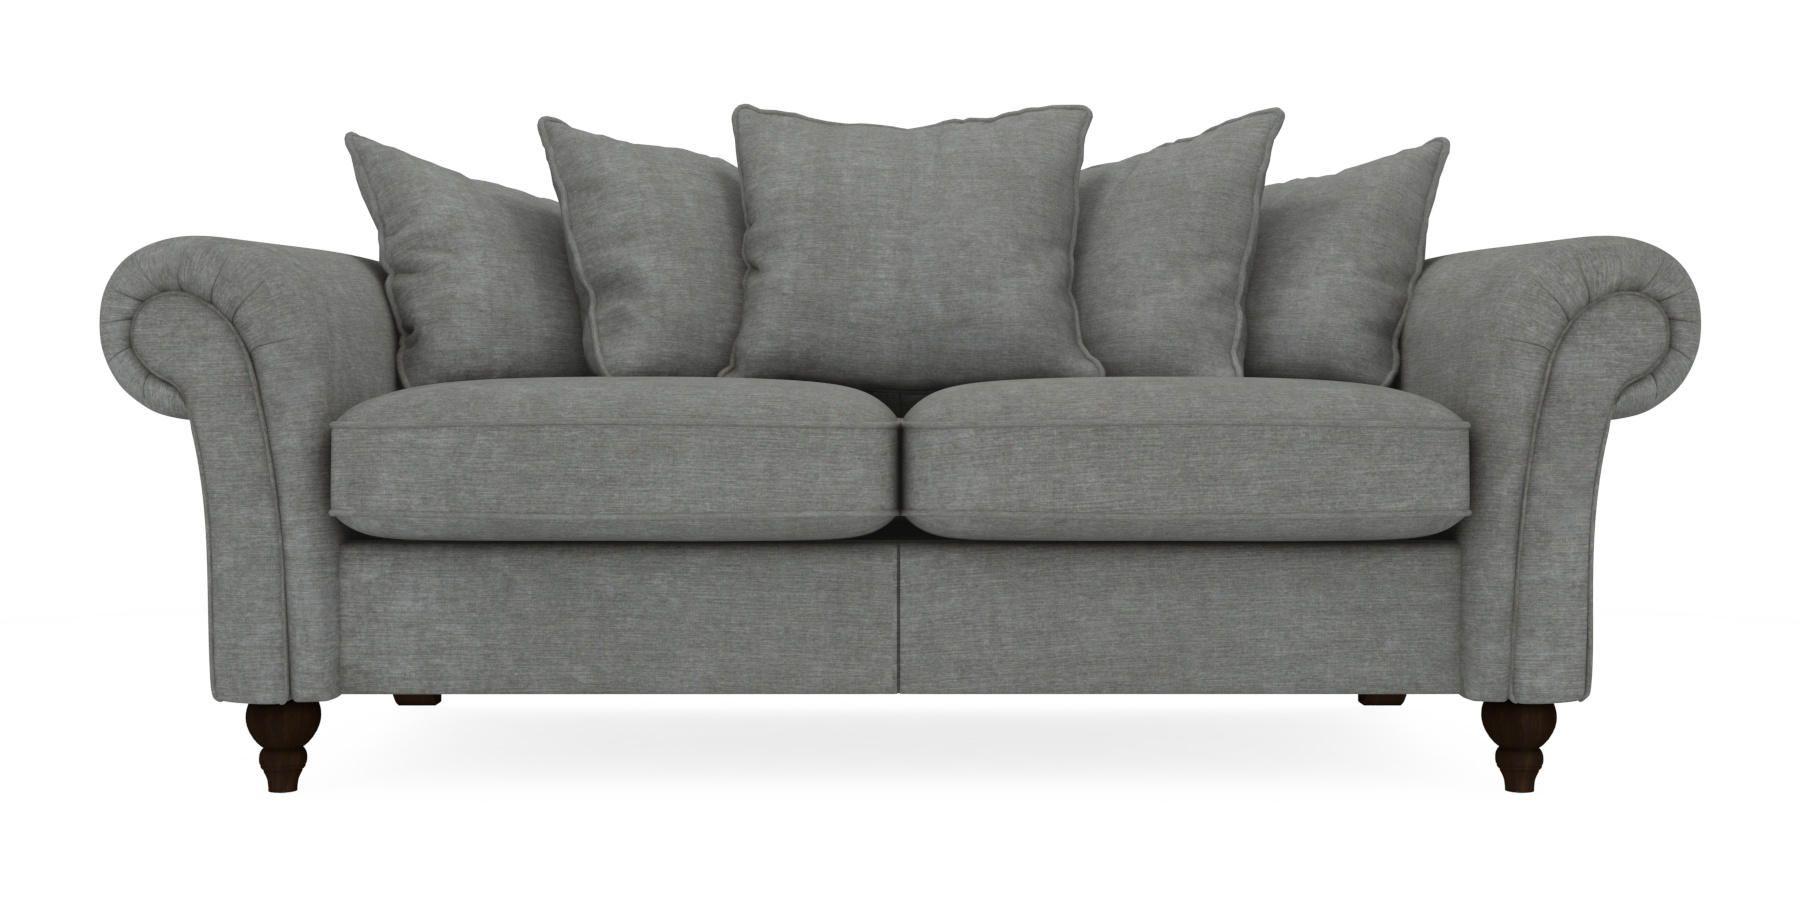 Delightful Buy Gosford Scatter Back Large Sofa (3 Seats) Soft Marl Mid French Grey  LowTurned